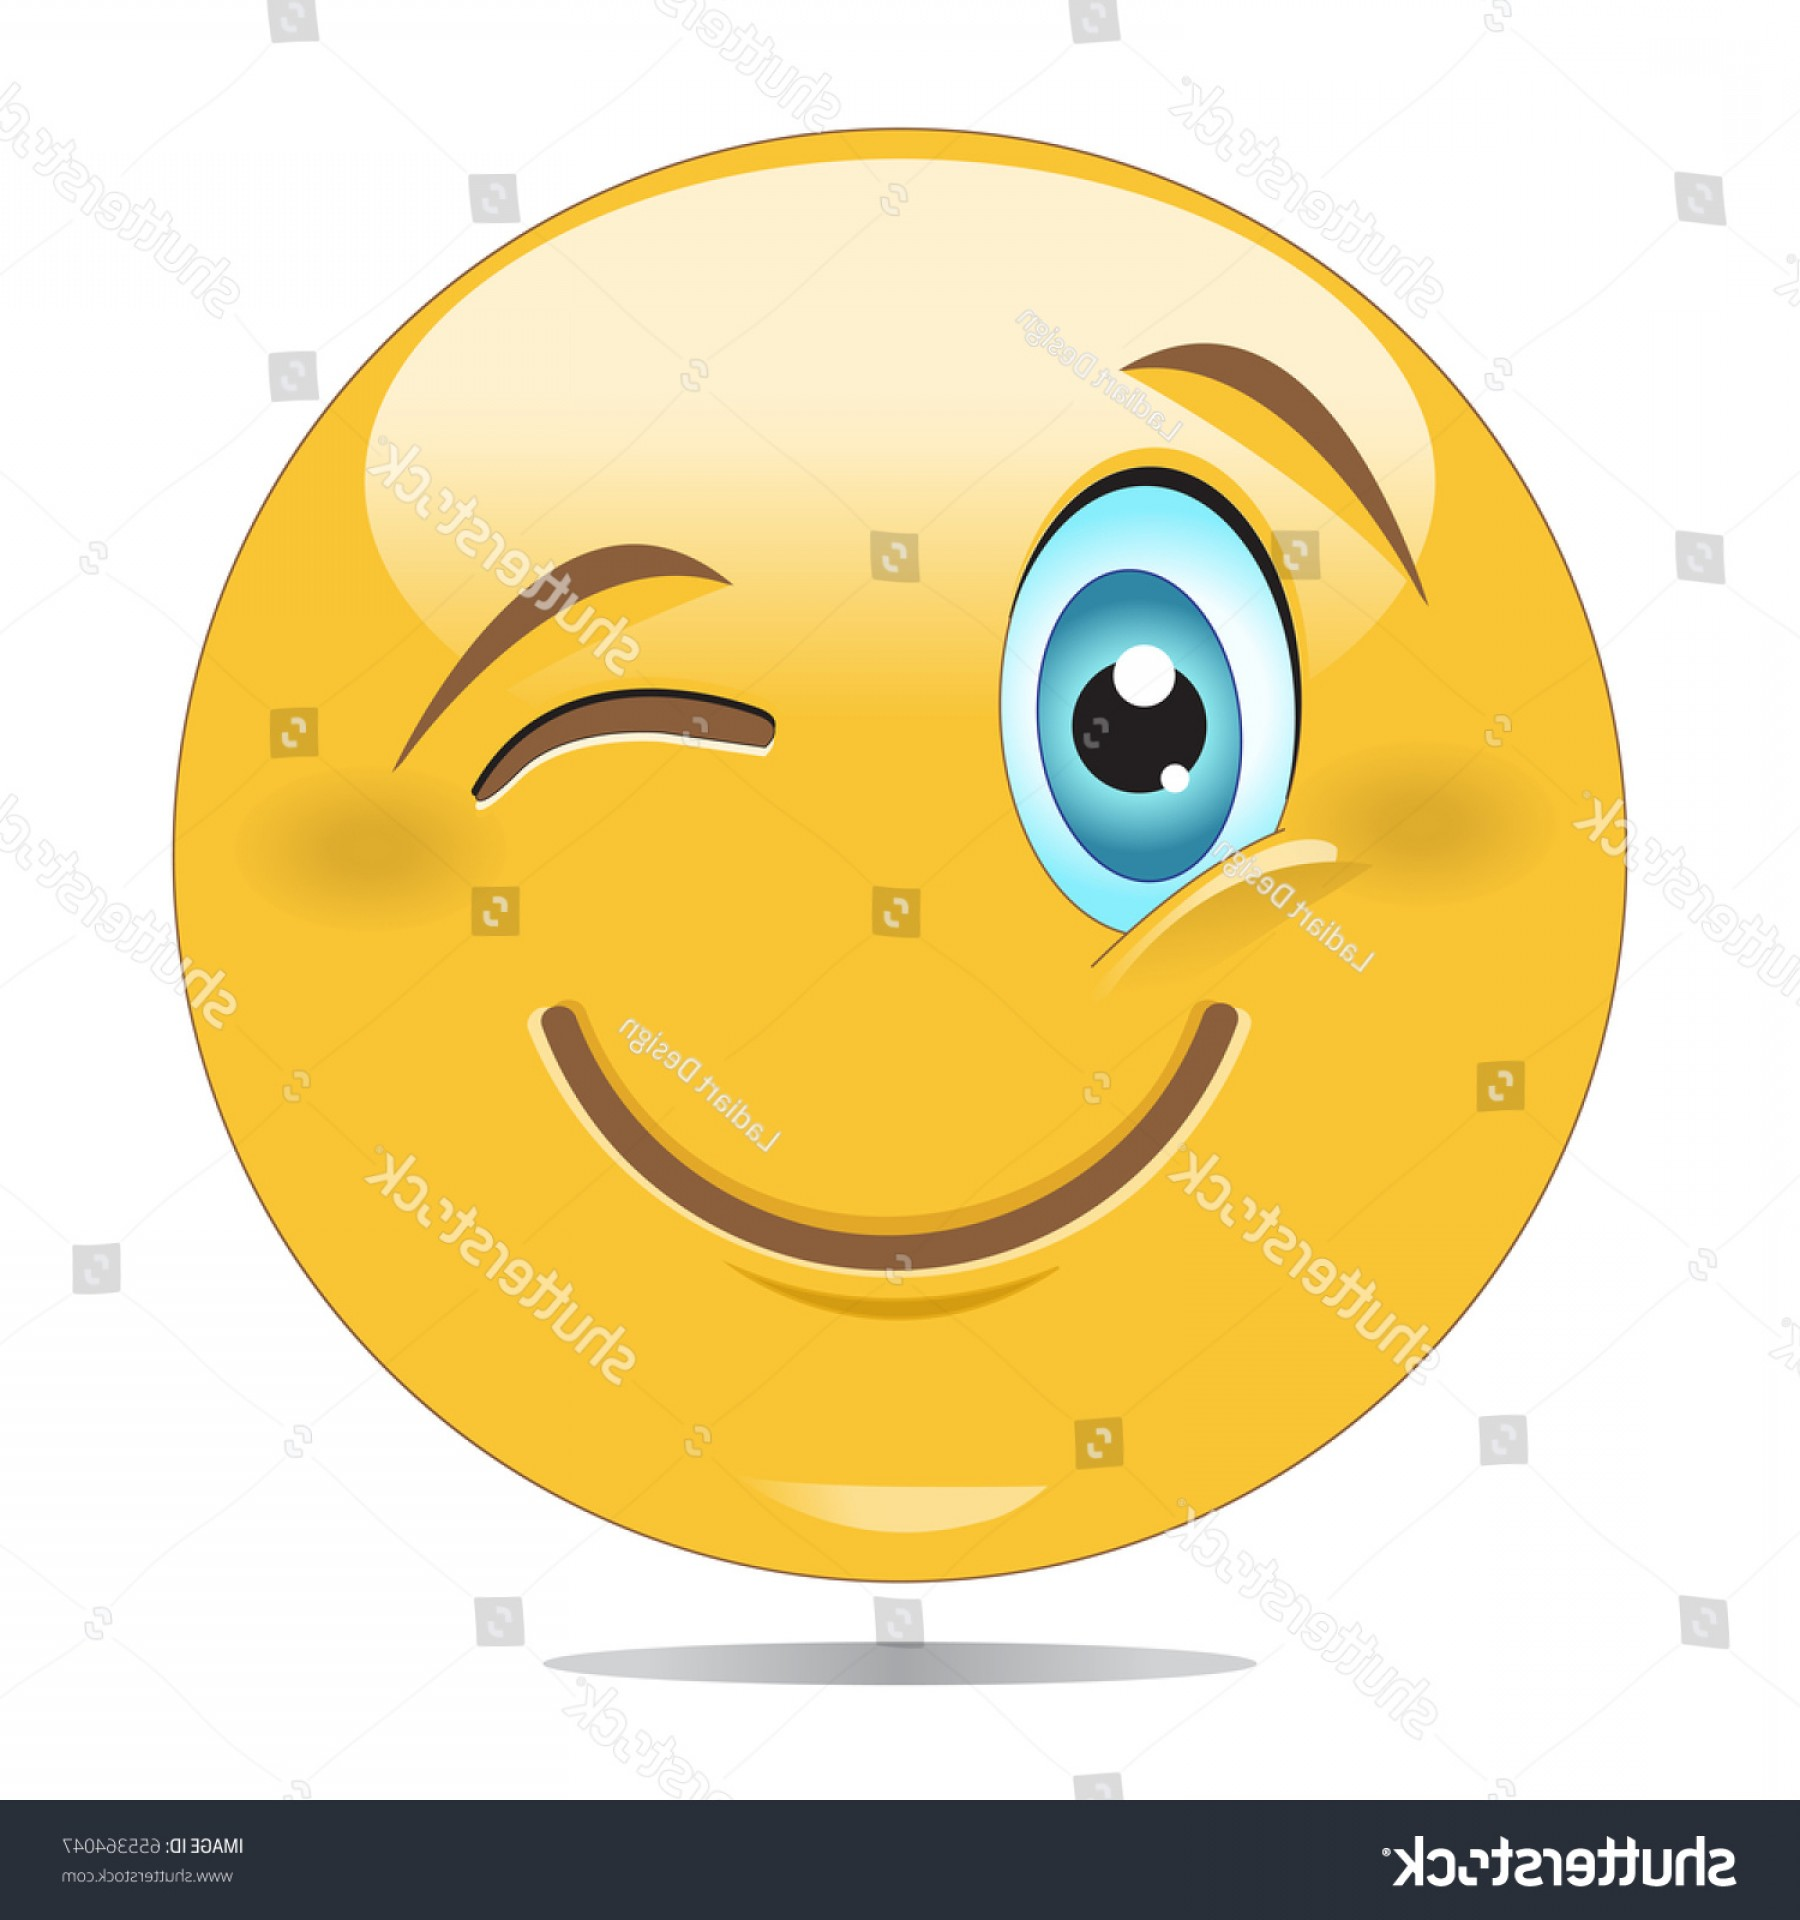 Smiley-Face Winking Vector: Smiley Face Winking Eye Emoticon